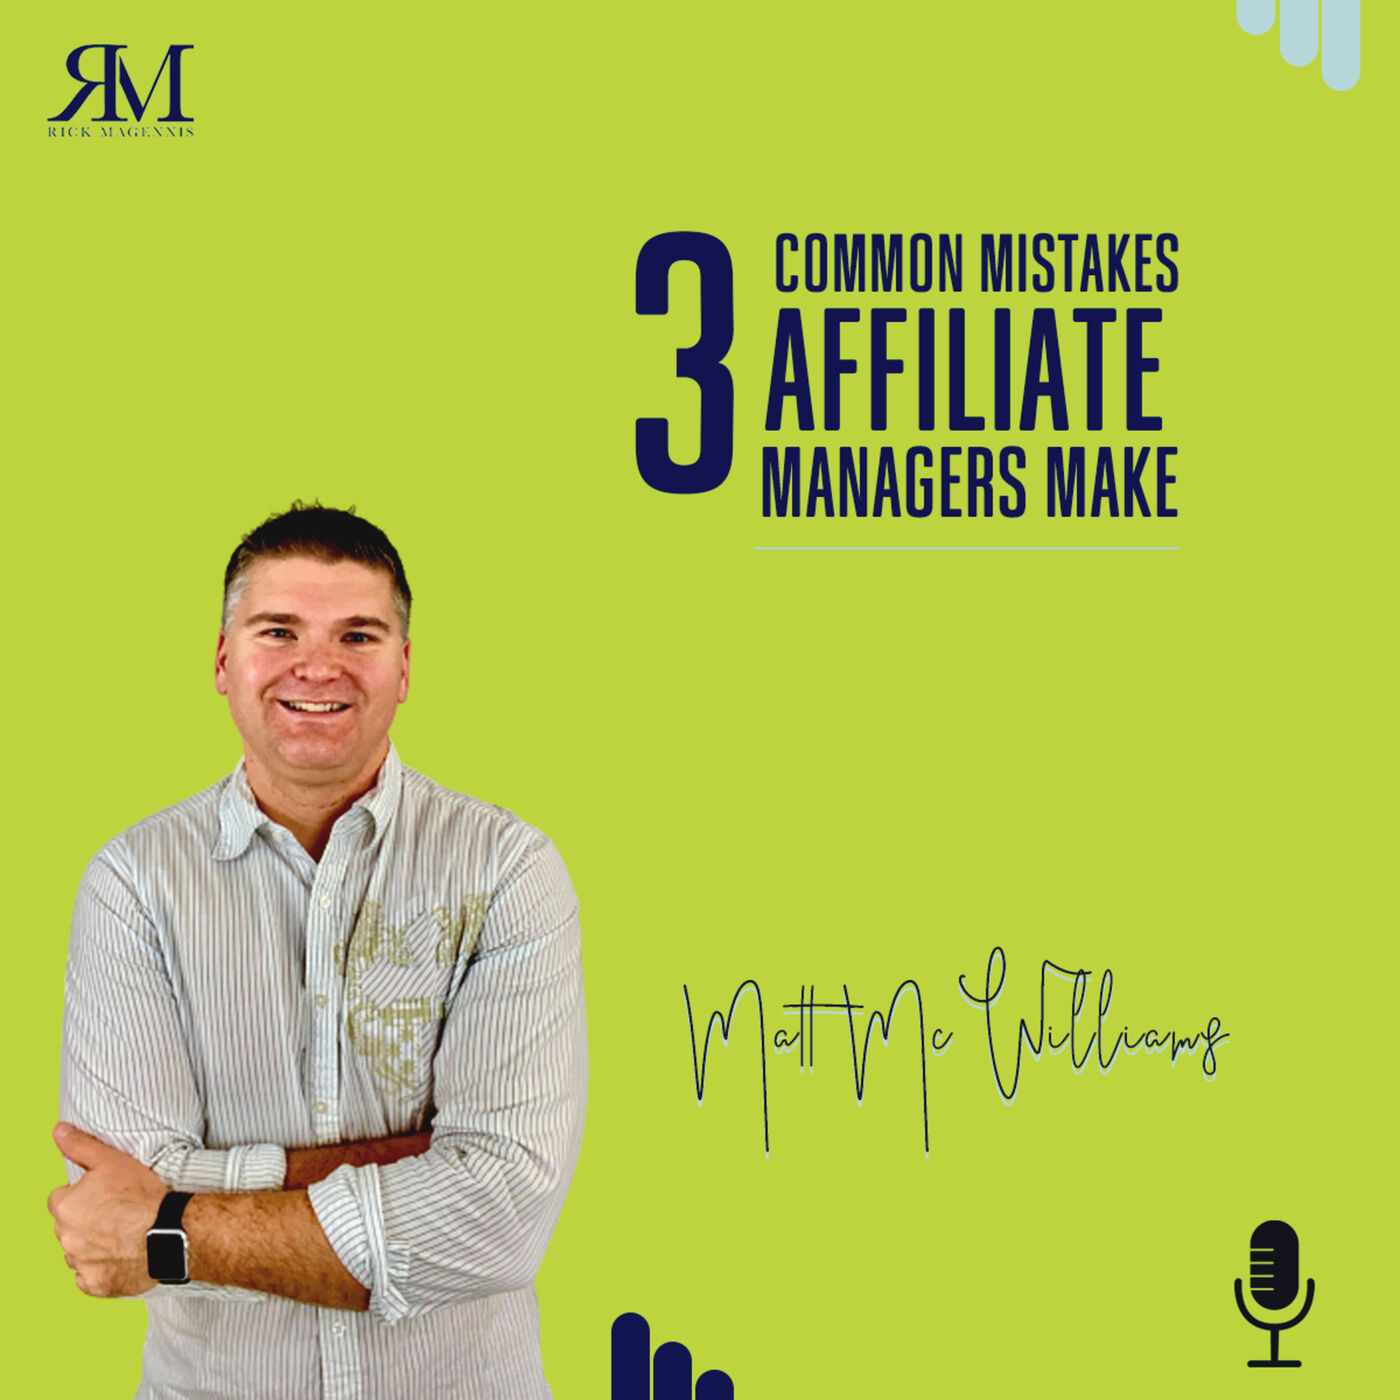 3 Common Mistakes Affiliate Managers Make